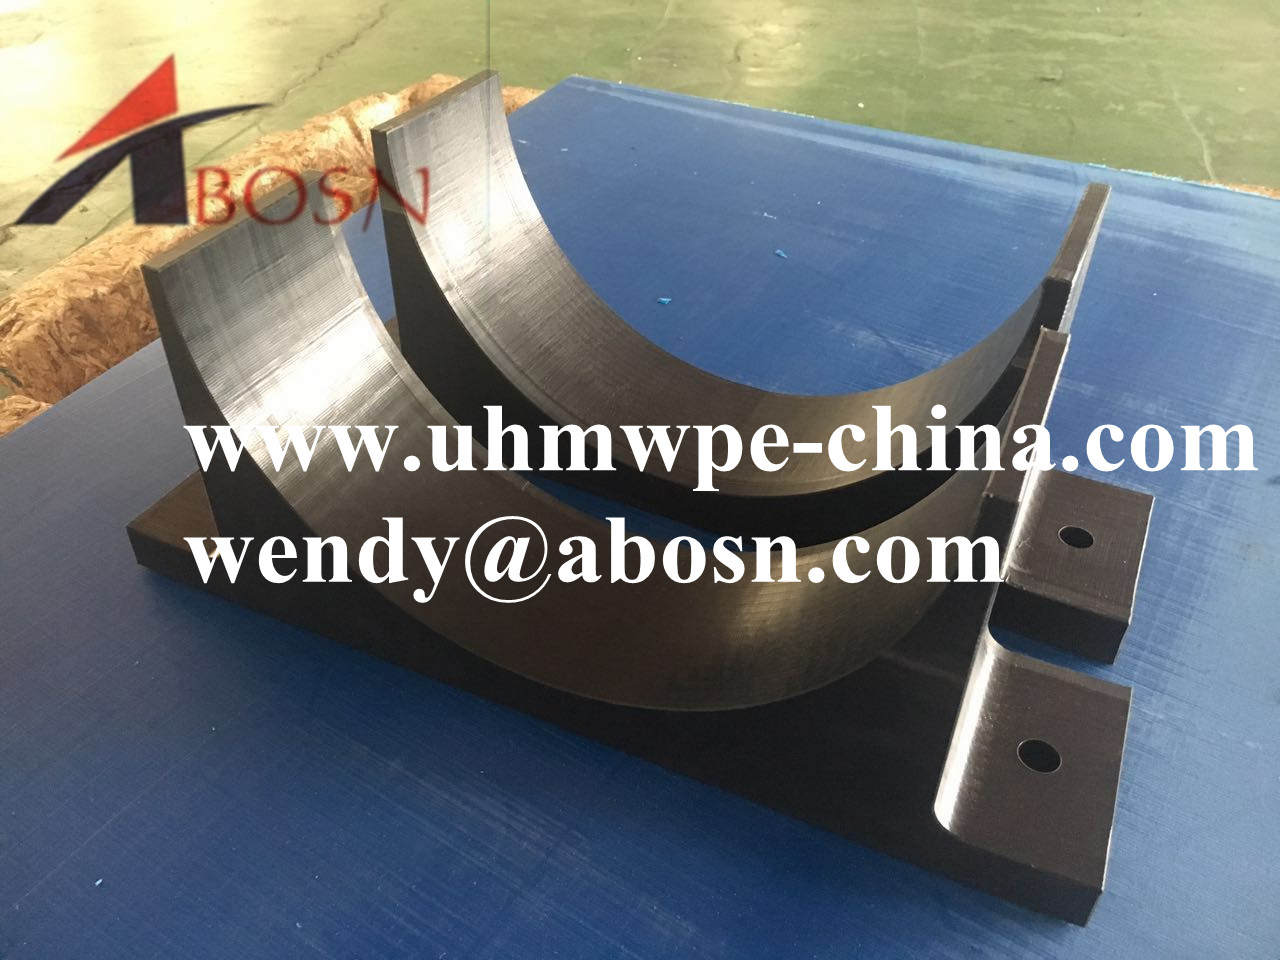 UHMWPE Pipe support